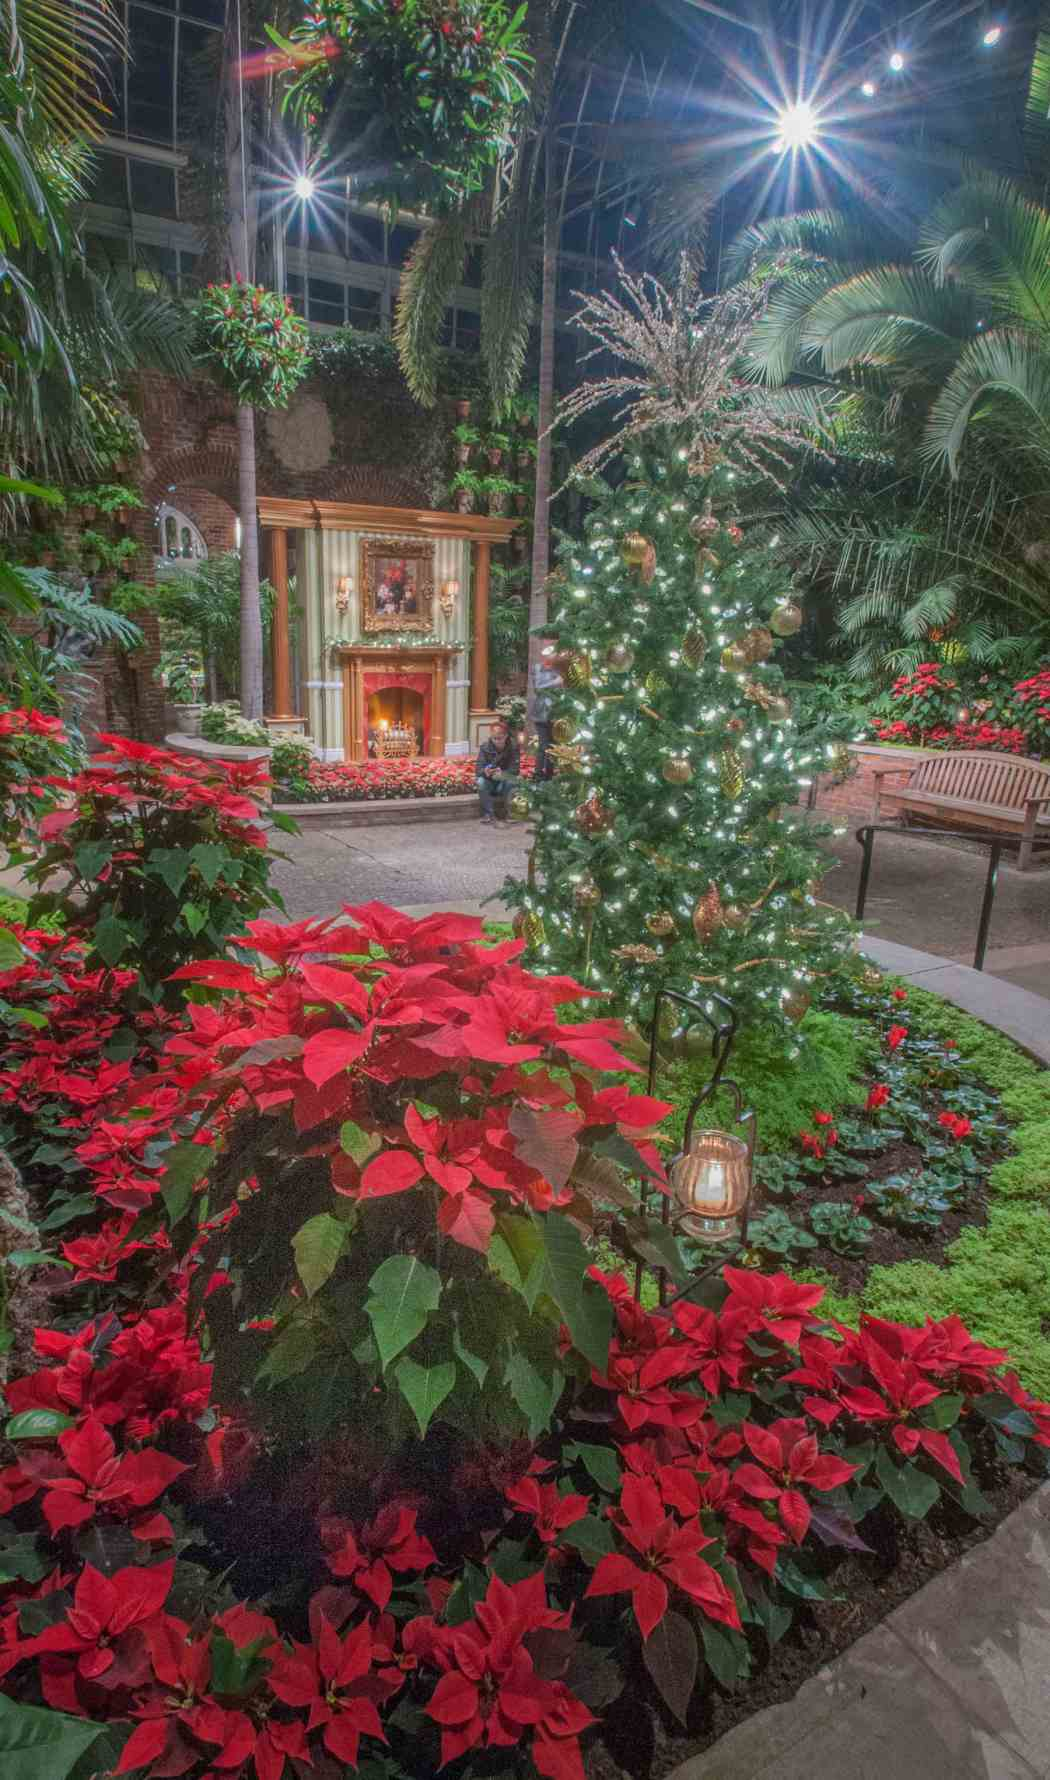 Winter Flower Show and Light Garden 2012: Come Home for the Holidays